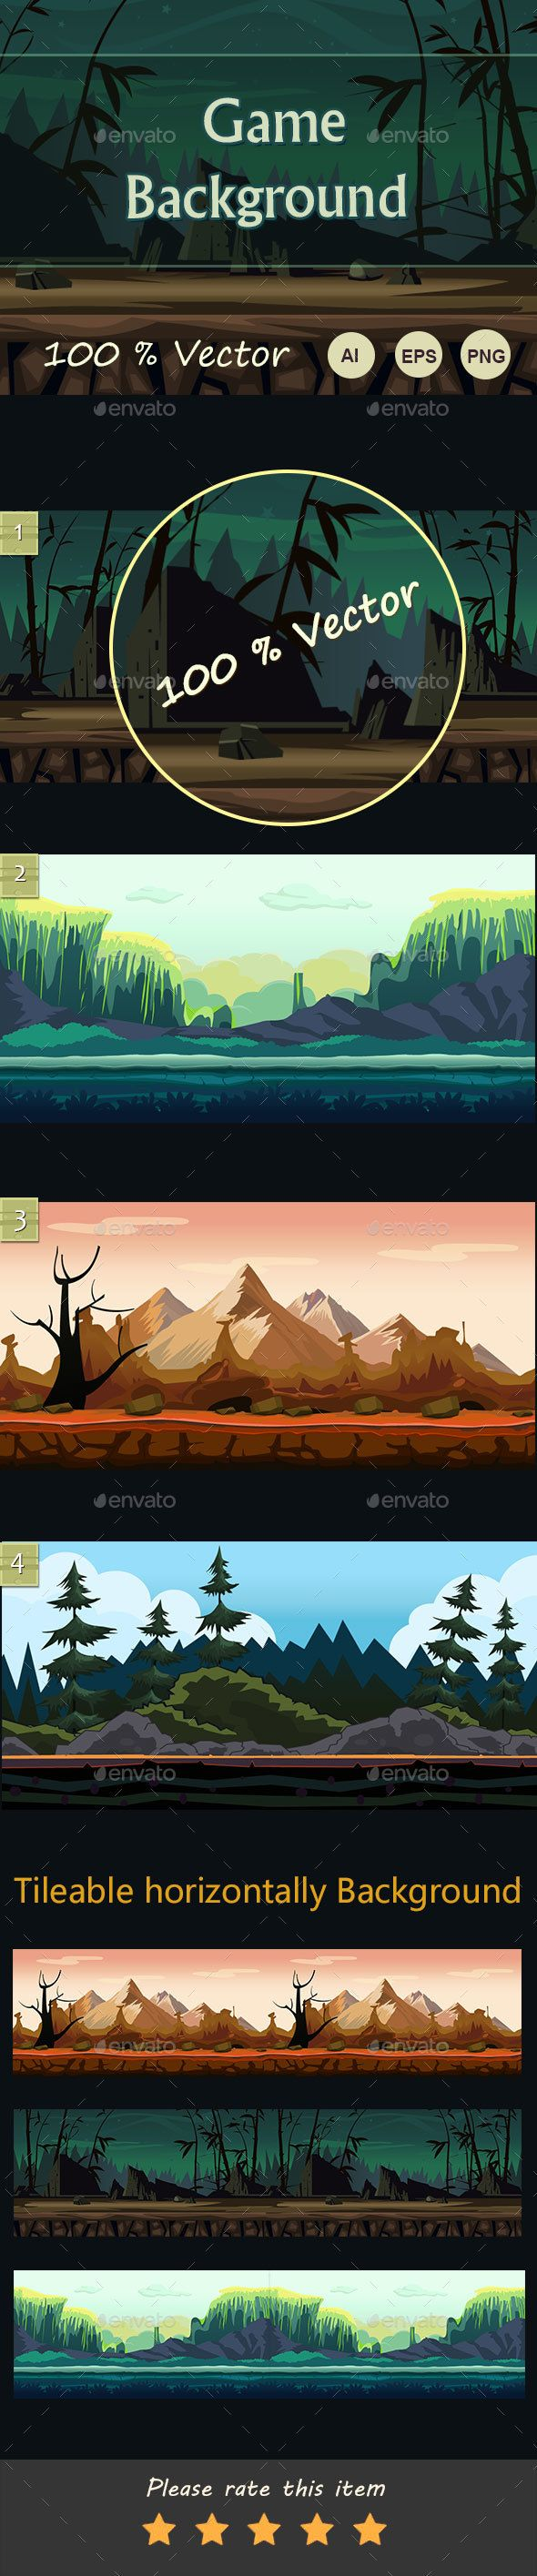 #Game #Background - Backgrounds Game Assets Download here: https://graphicriver.net/item/game-background/17107557?ref=alena994